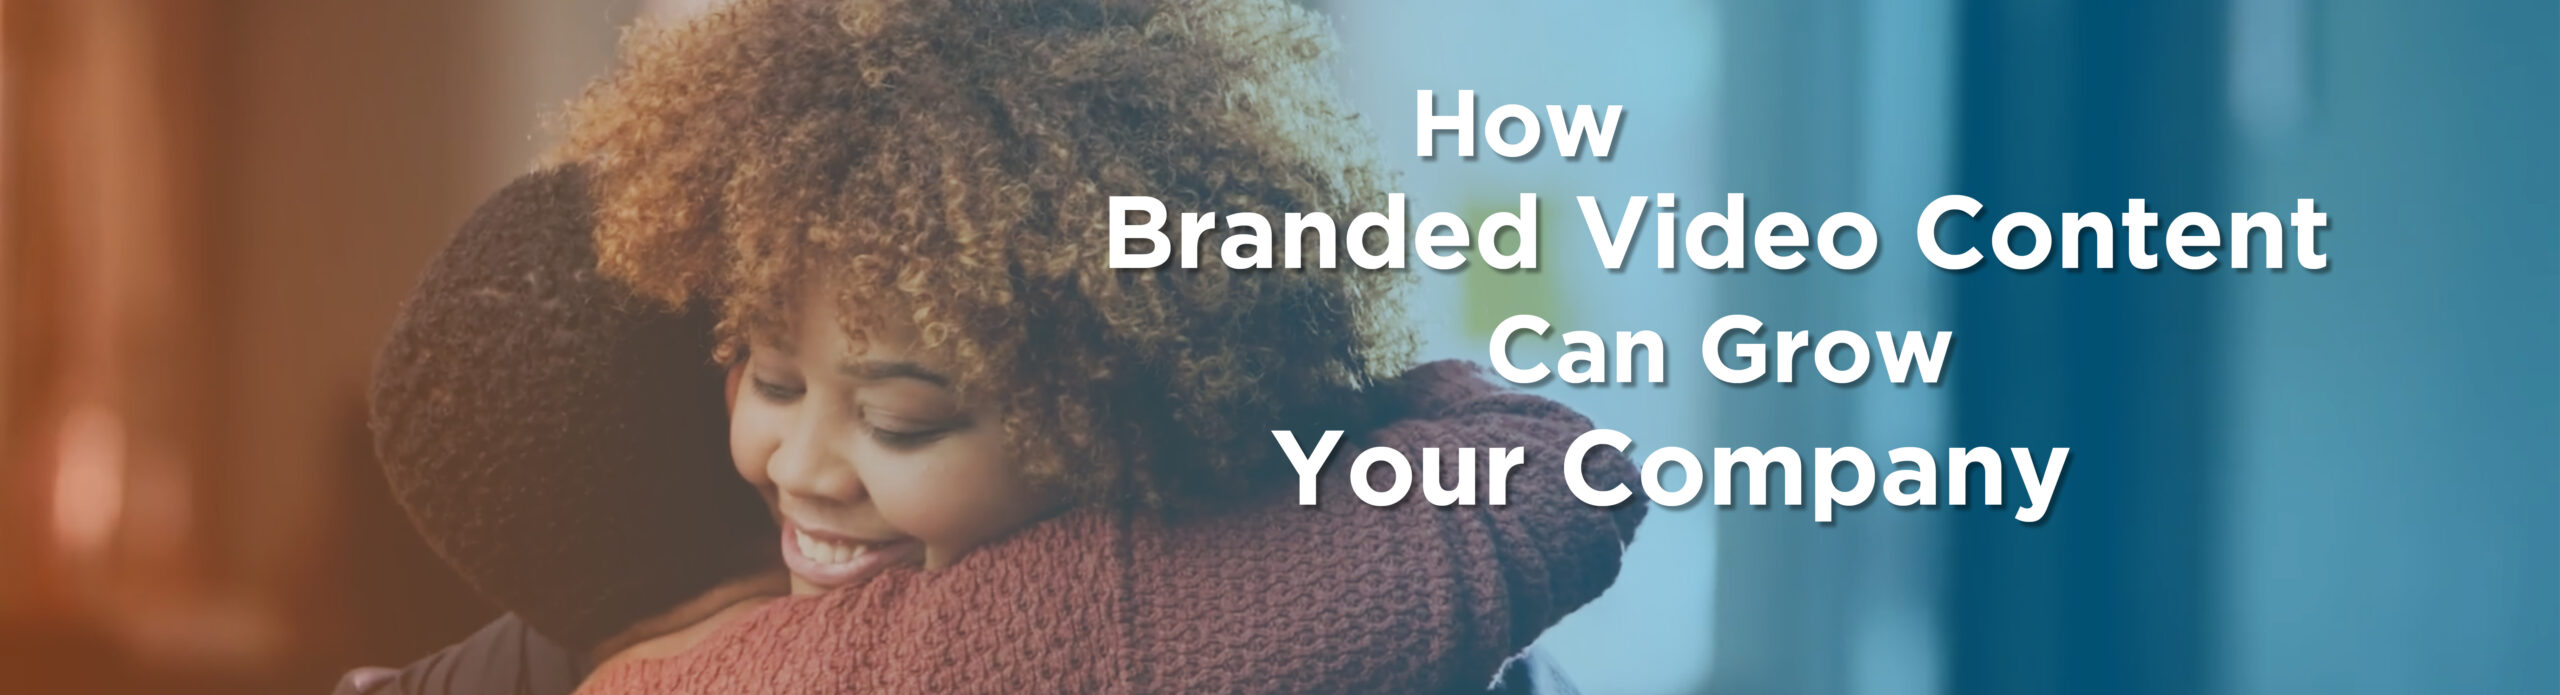 How Branded Video Content Can Grow Your Company